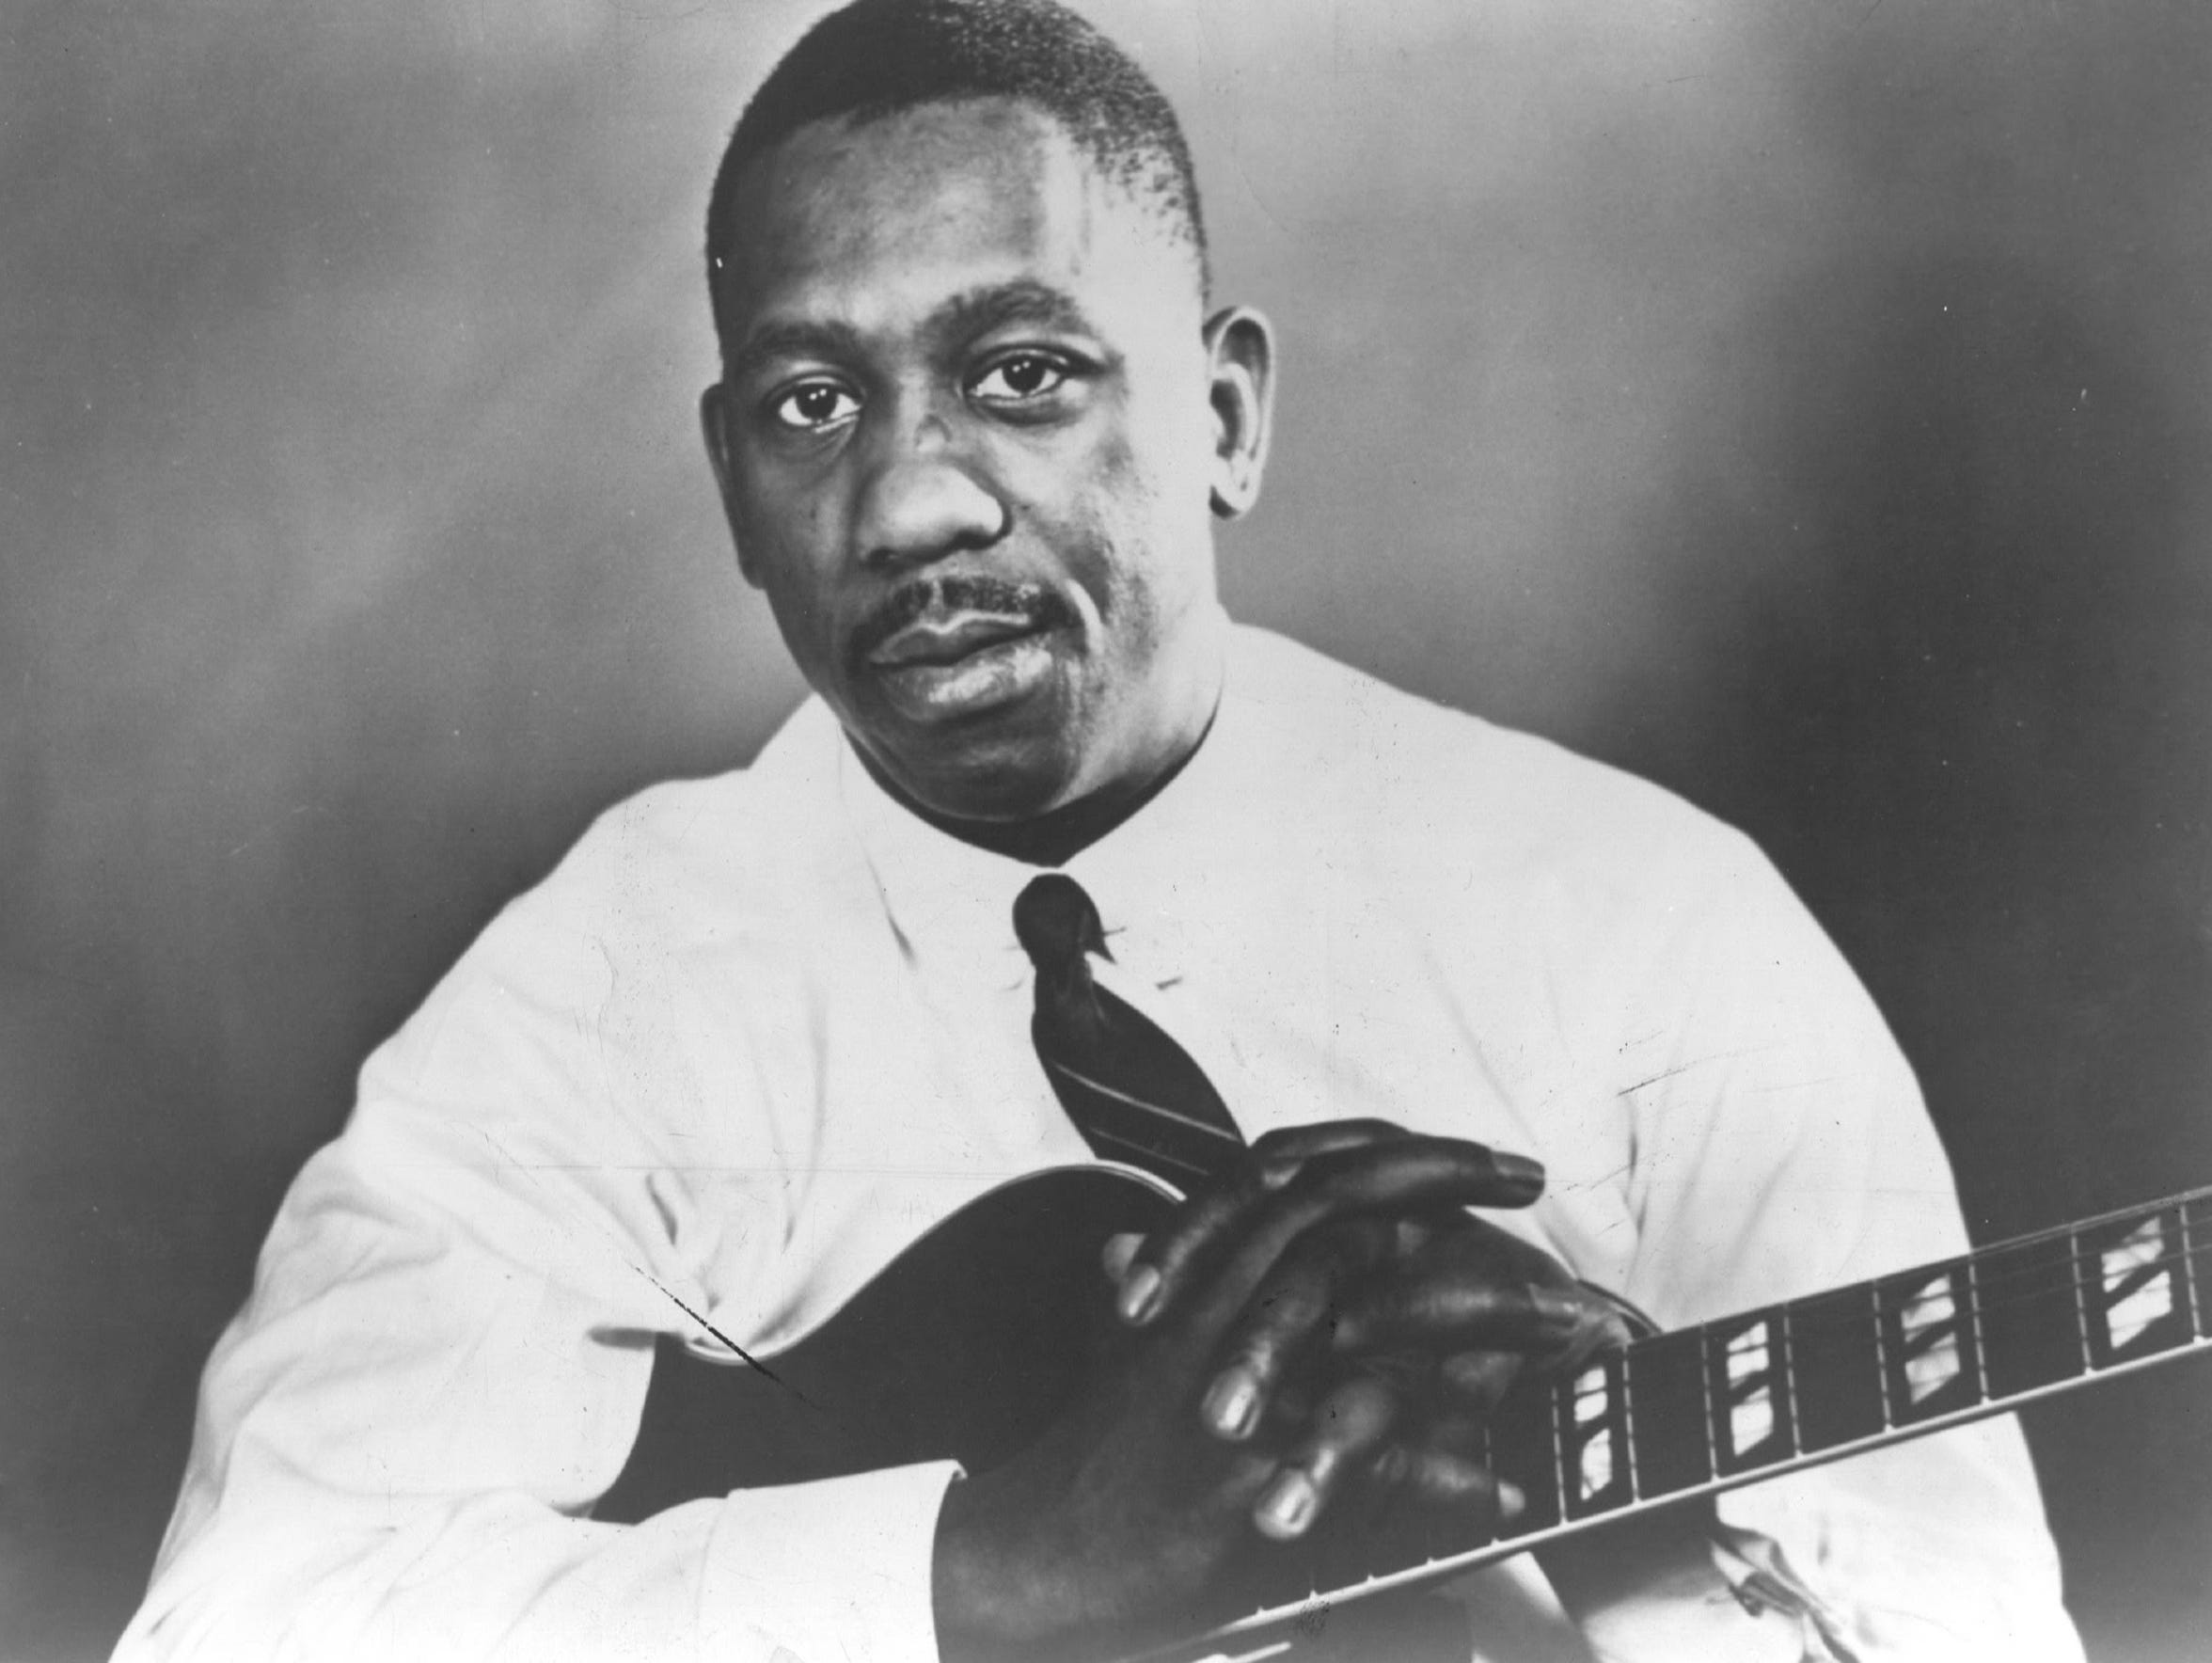 Wes Montgomery was a two-time Grammy Award winner who